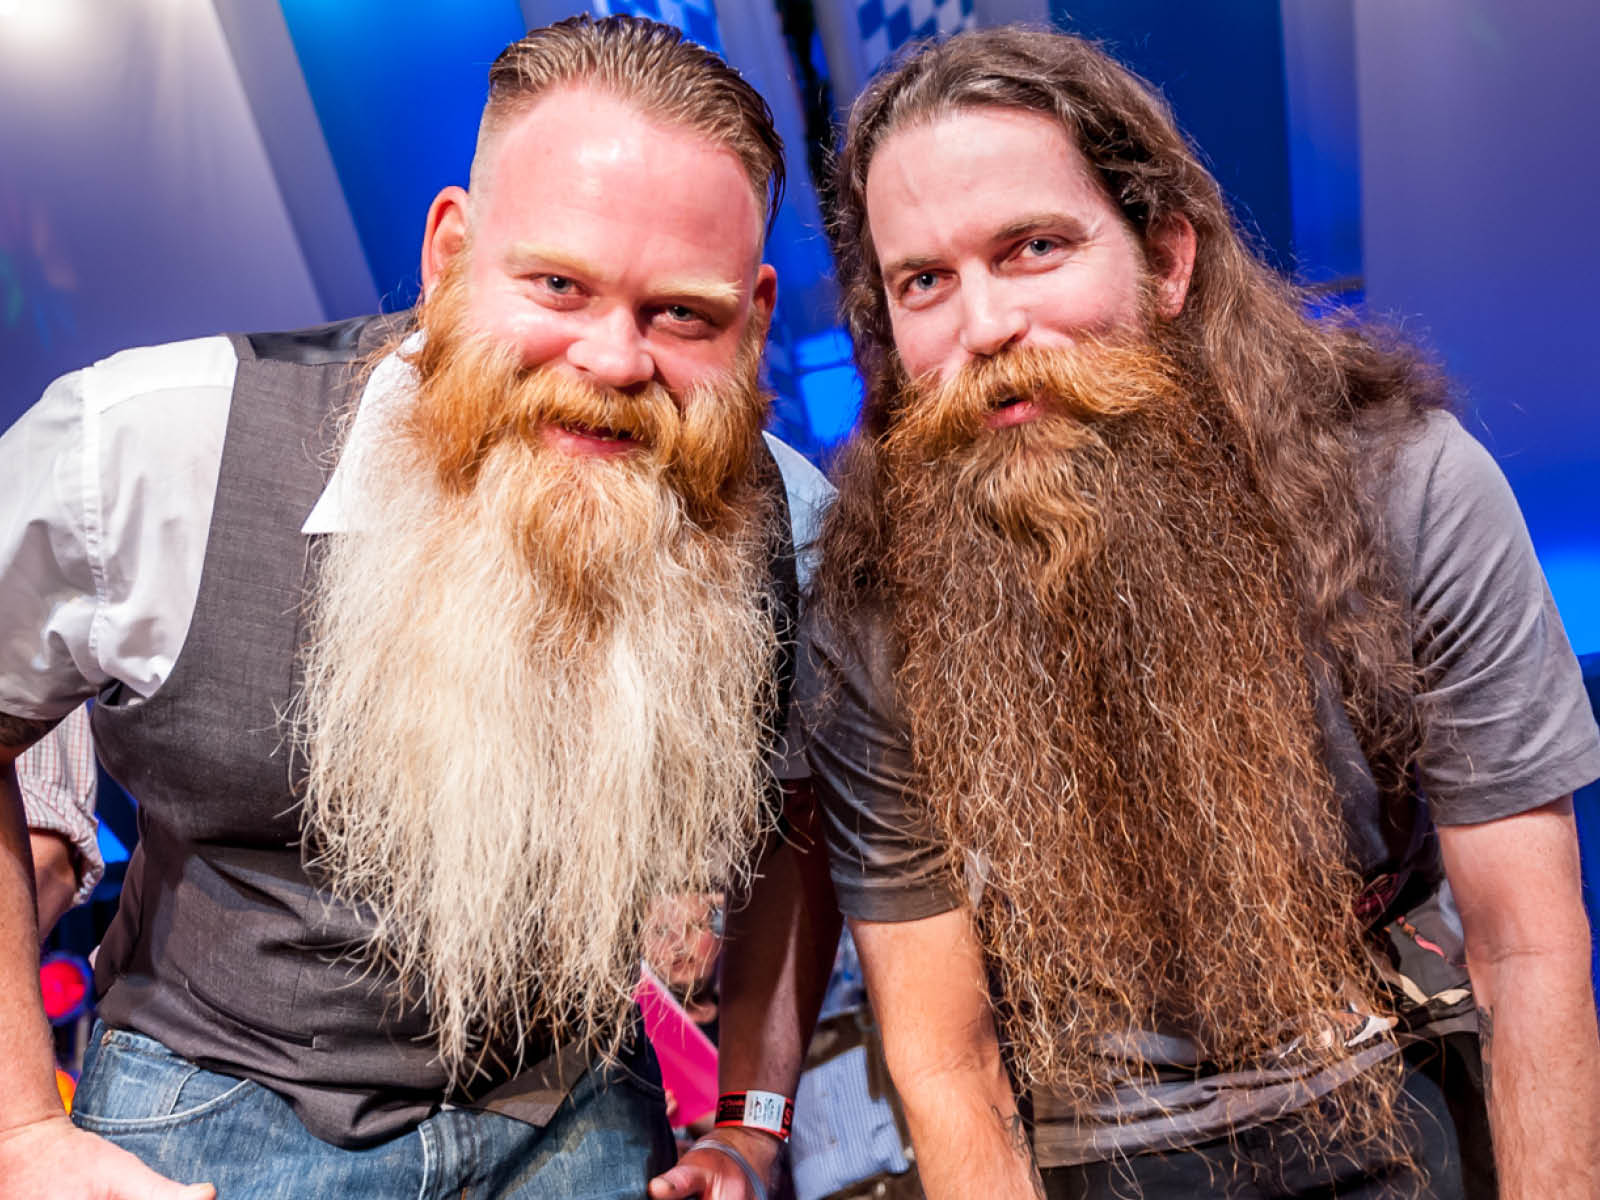 Alpine Beard Contest